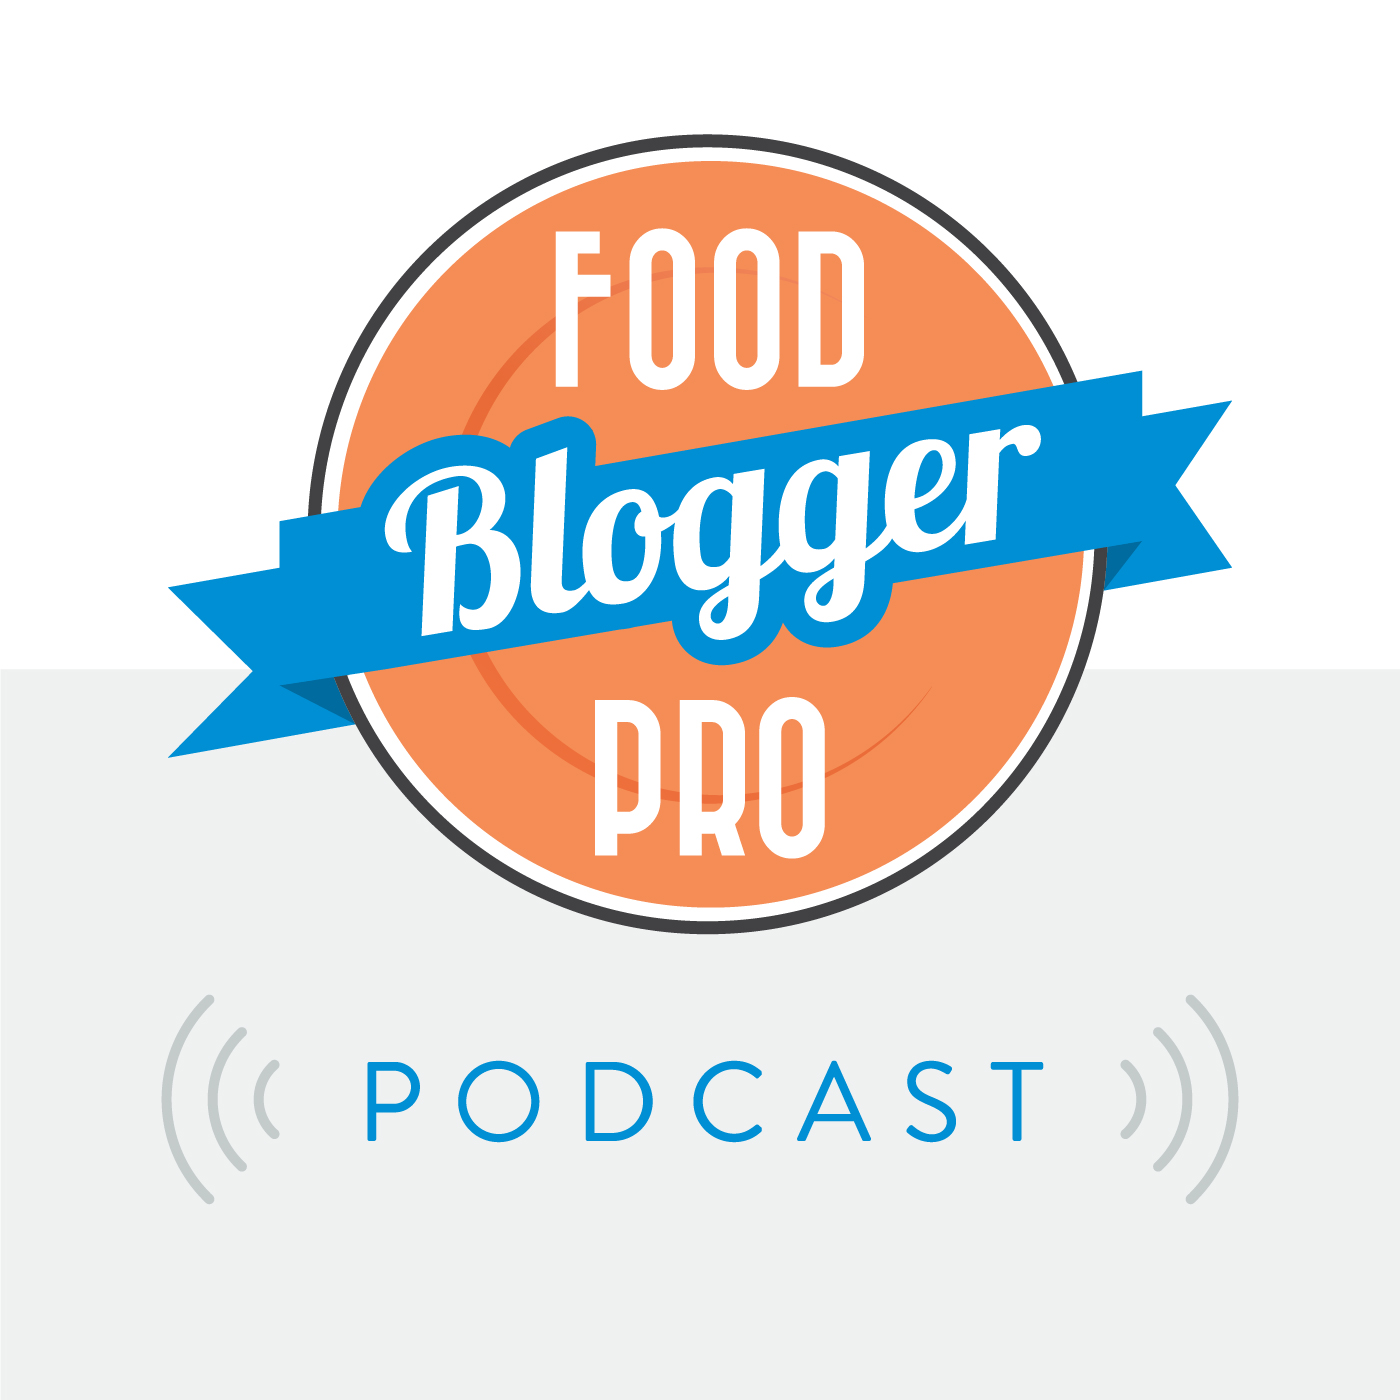 FBP_Podcast_Logo_2015-06-2.jpg